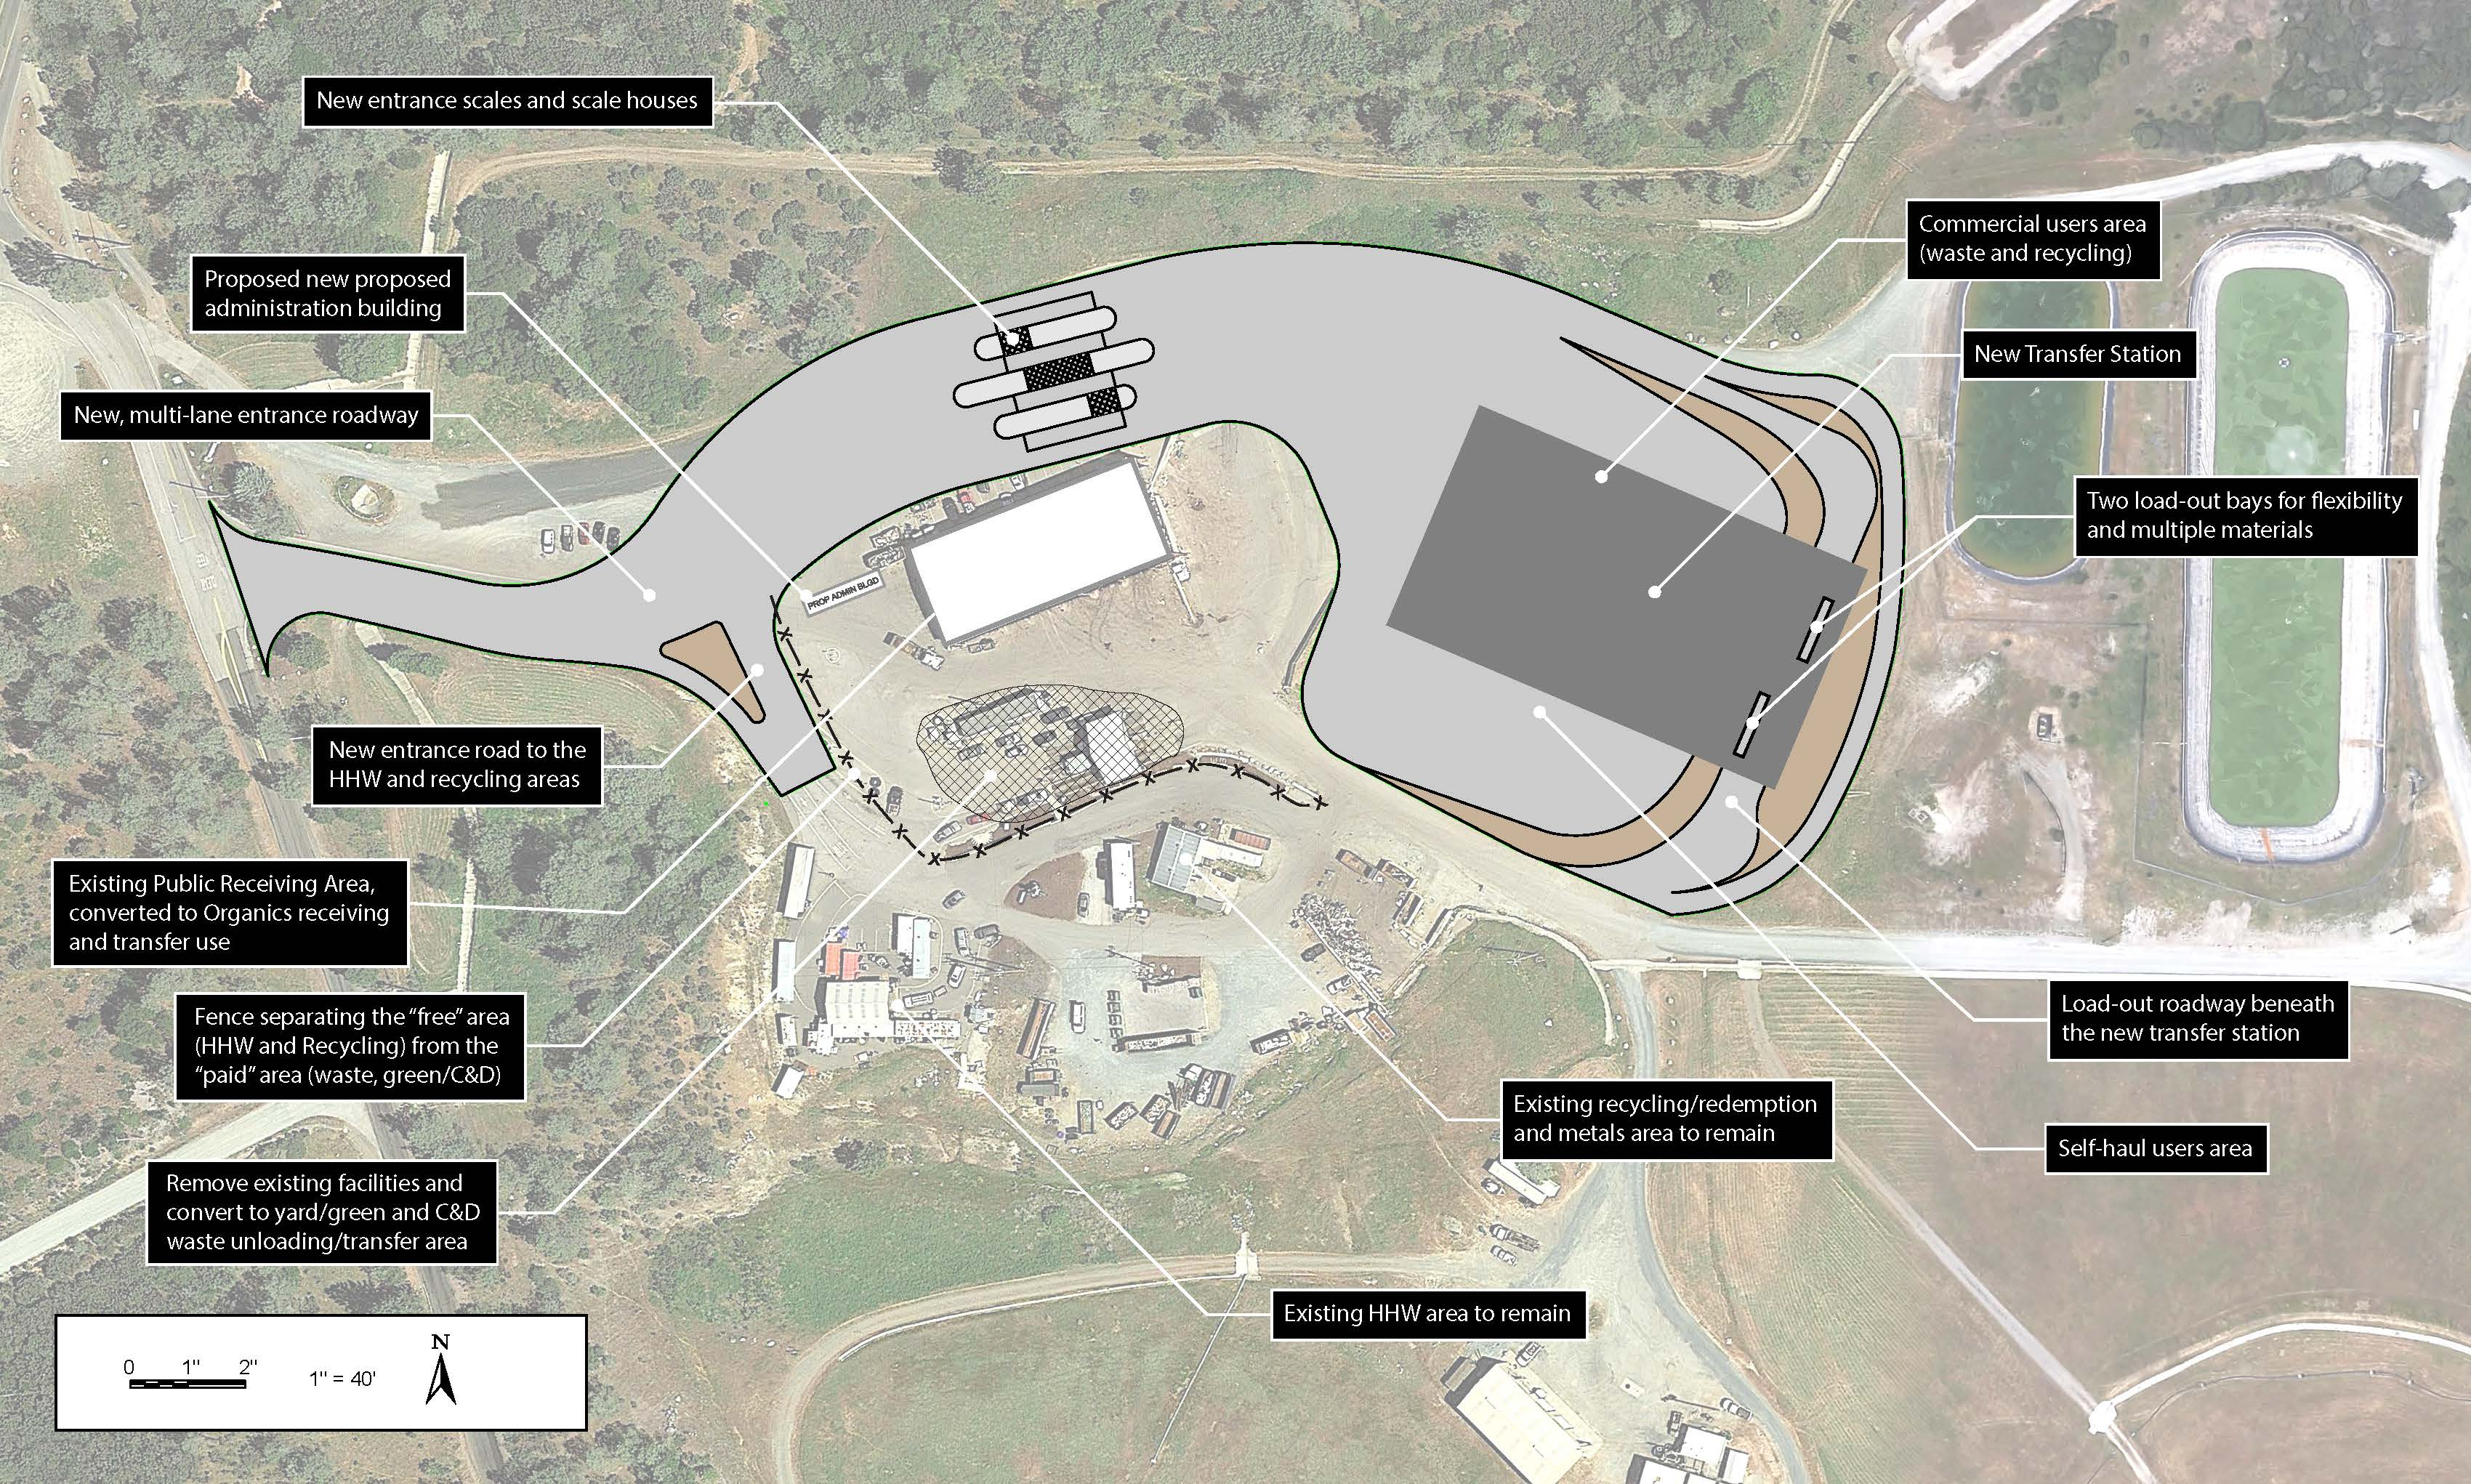 "Starting from the entrance going clockwise, site design features include: new entrance scales and scale houses; commercial users area for waste and recycling; new transfer station; two load-out bays for flexibility and multiple materials; load-out roadway beneath the new transfer station; self-haul users area; existing recycling/redemption and metals area to remain; existing HHW area to remain; remove existing facilities and convert to yard/green and C&D waste unloading/transfer area; fence separating the ""free"" area (HHW and recycling) from the ""paid"" area (waste, green/C&D); existing PRA converted to Organics receiving and transfer use; new entrance road to the HHW and recycling areas; new, multi-lane entrance roadway; and proposed new administration building."